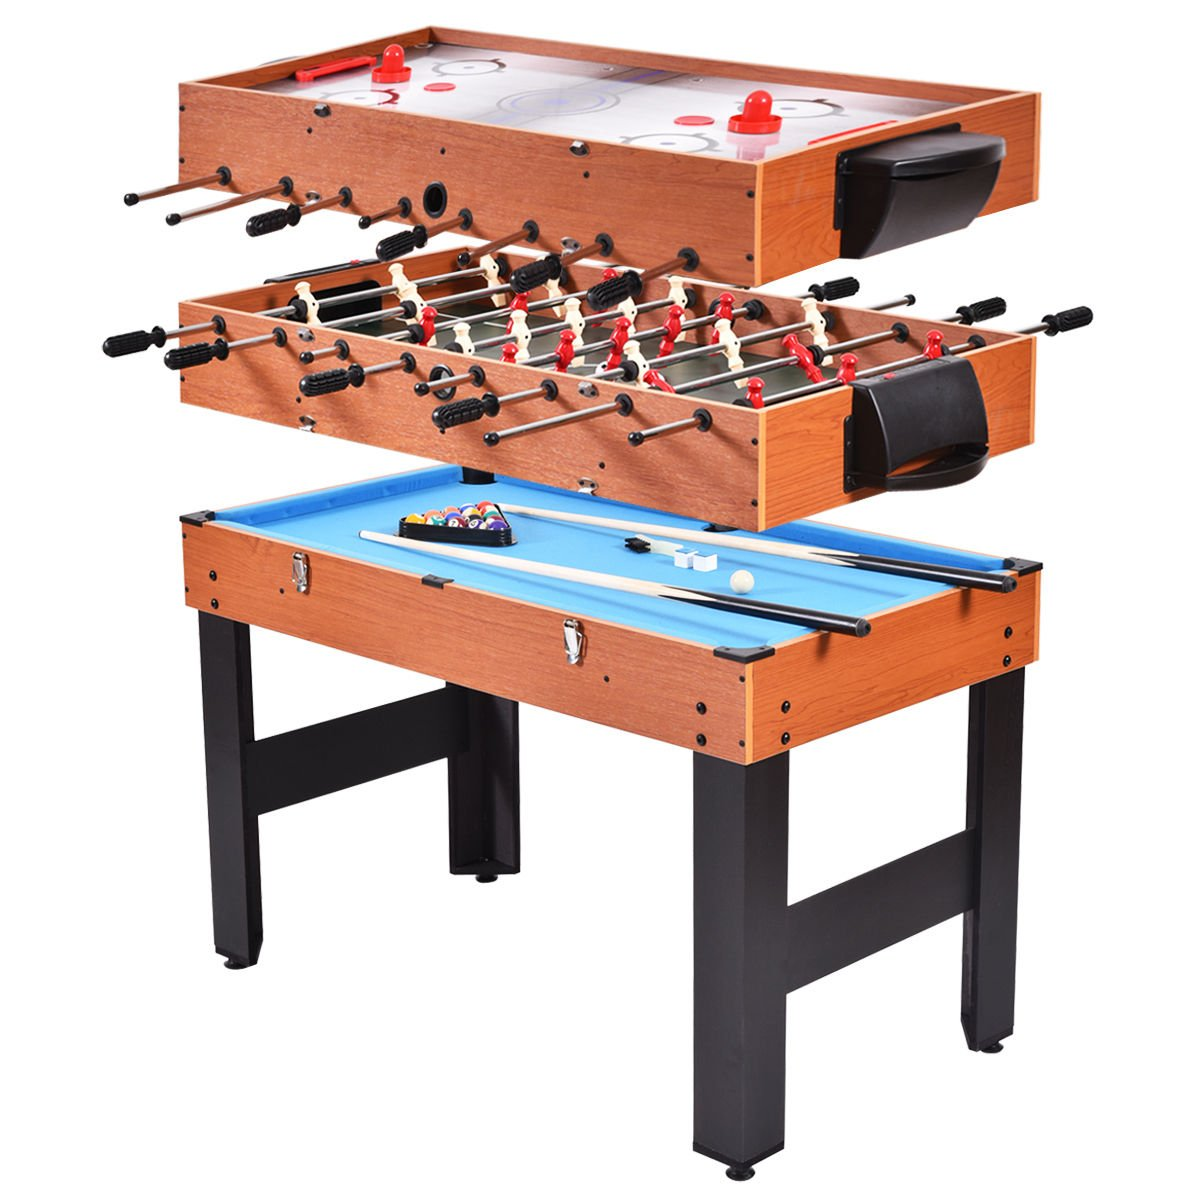 Giantex Multi Game Table, 3-in-1 48'' Combination Game Table w/Soccer, Billiard, Slide Hockey, Perfect for Game Rooms, Arcades, Bars, Parties, Family Night by Giantex